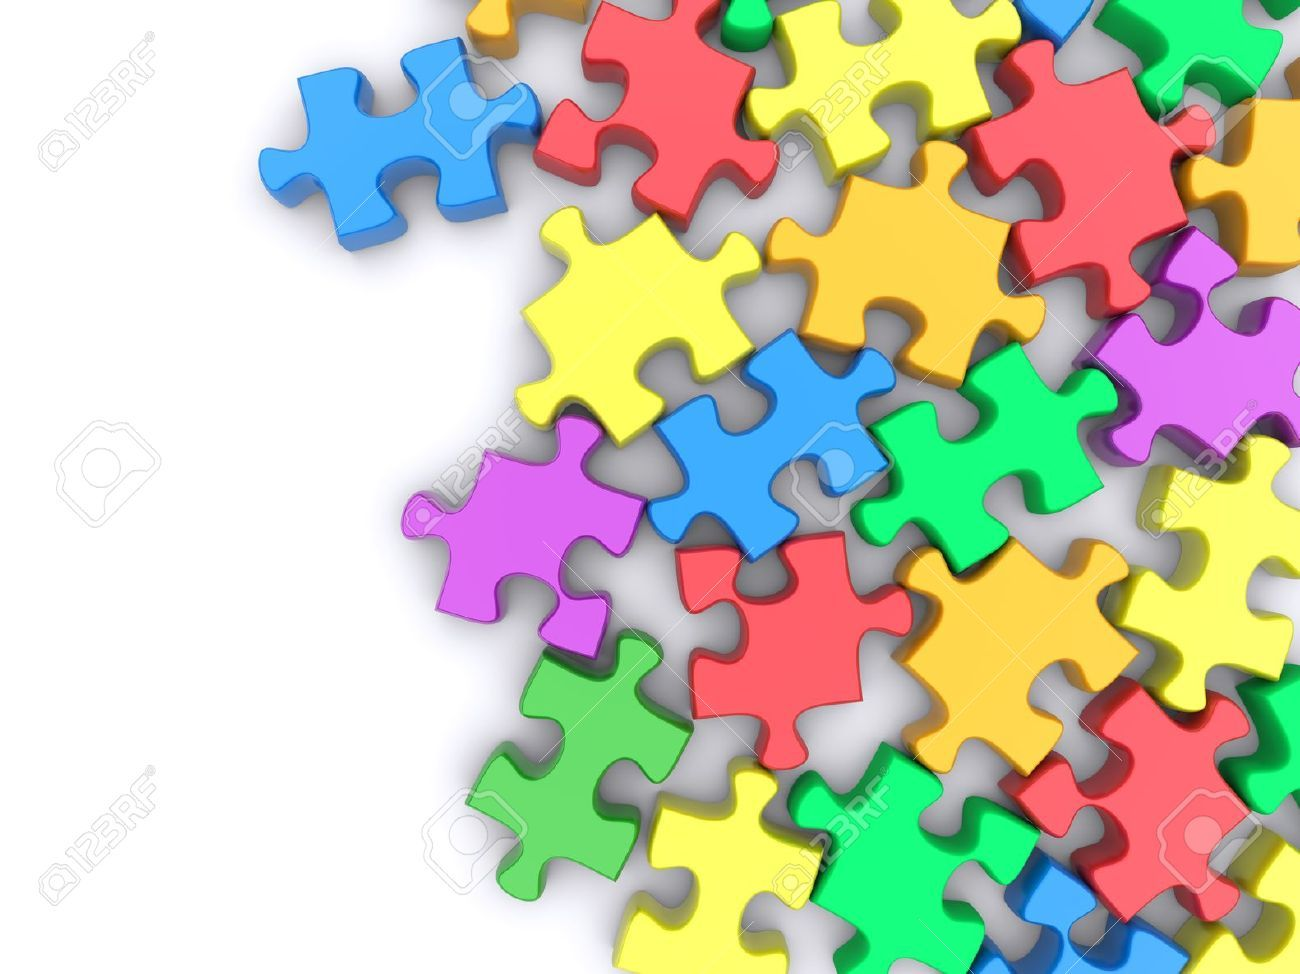 Jigsaw Puzzle On A White Background 3d Rendered Image Stock Photo